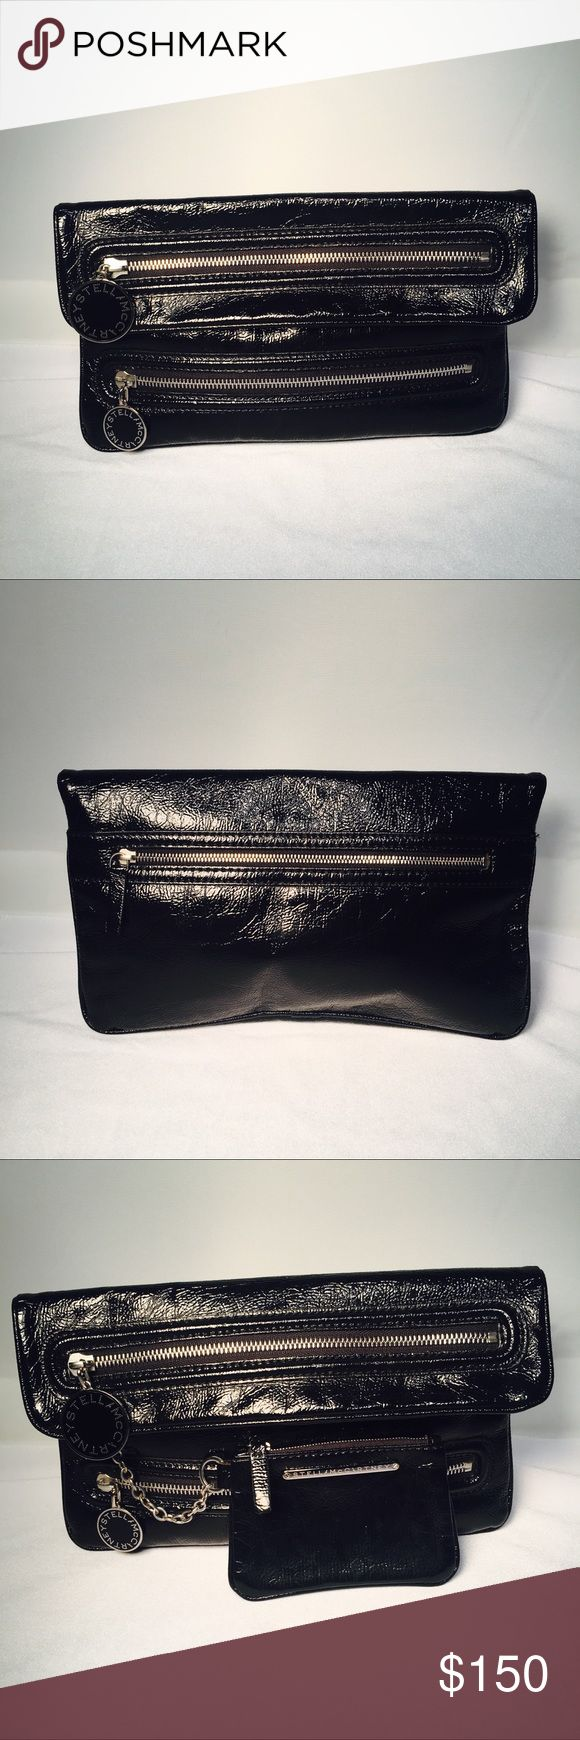 "Stella McCartney Clutch Preloved:  Black high- gloss patent leather with branded hardware, zippered pockets, and chain-linked purse for extra storage.  Measures 7"" H x 13"" W x 3"" D and in excellent condition. No documentation but authentic high quality is evident. Stella McCartney Bags Clutches & Wristlets"